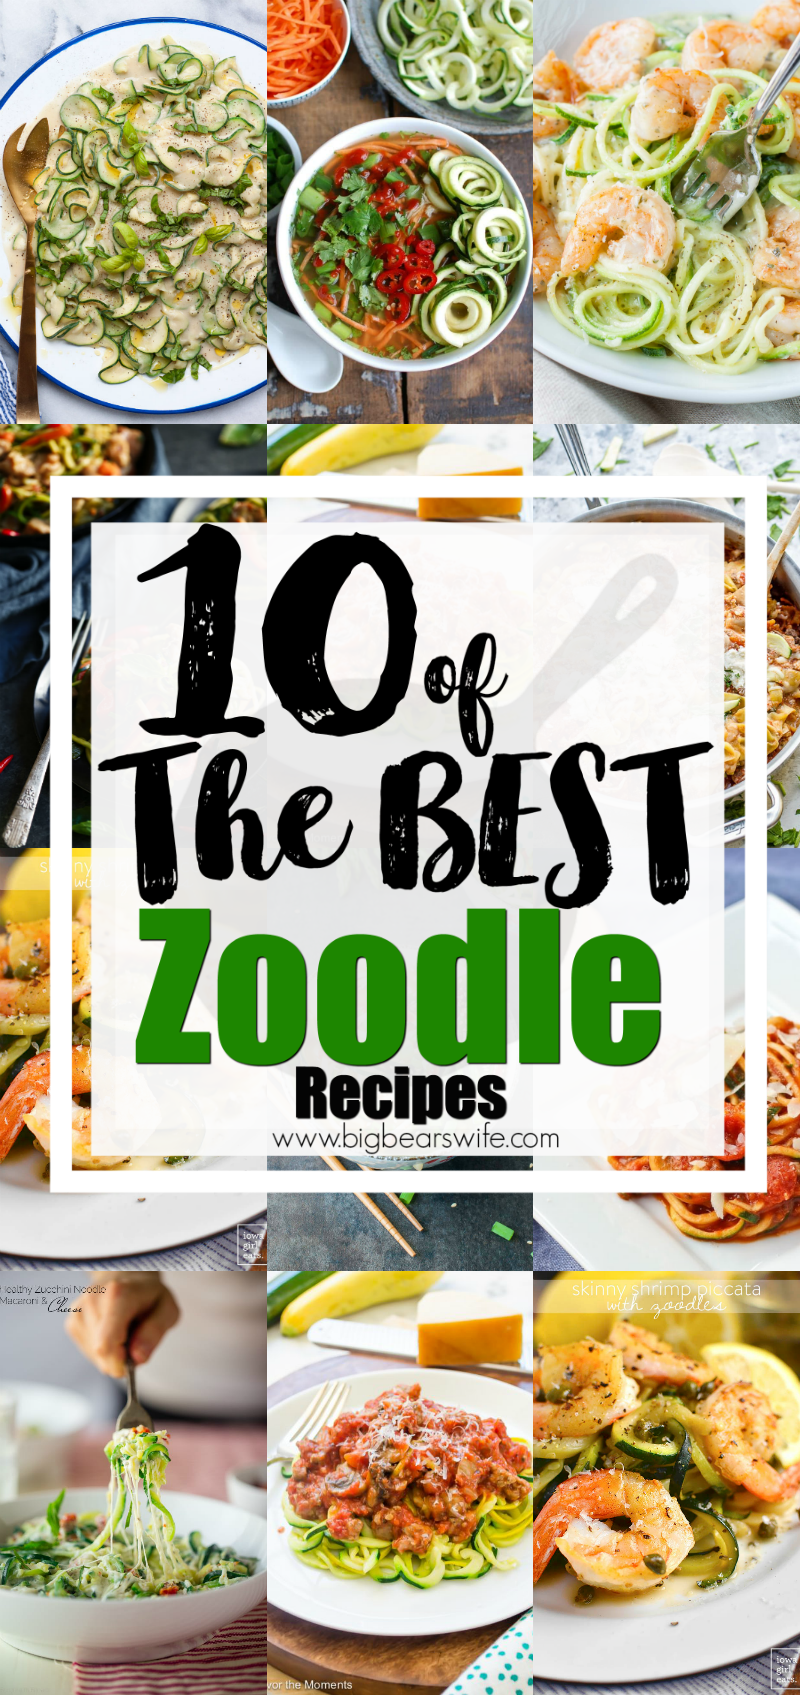 10 of the Best Zoodle Recipes - Use up those amazing vegetables that you're grabbing at the Farmer's Market and whip up these fun zoodle recipes! We're looking at 10 of the Best Zoodle Recipes